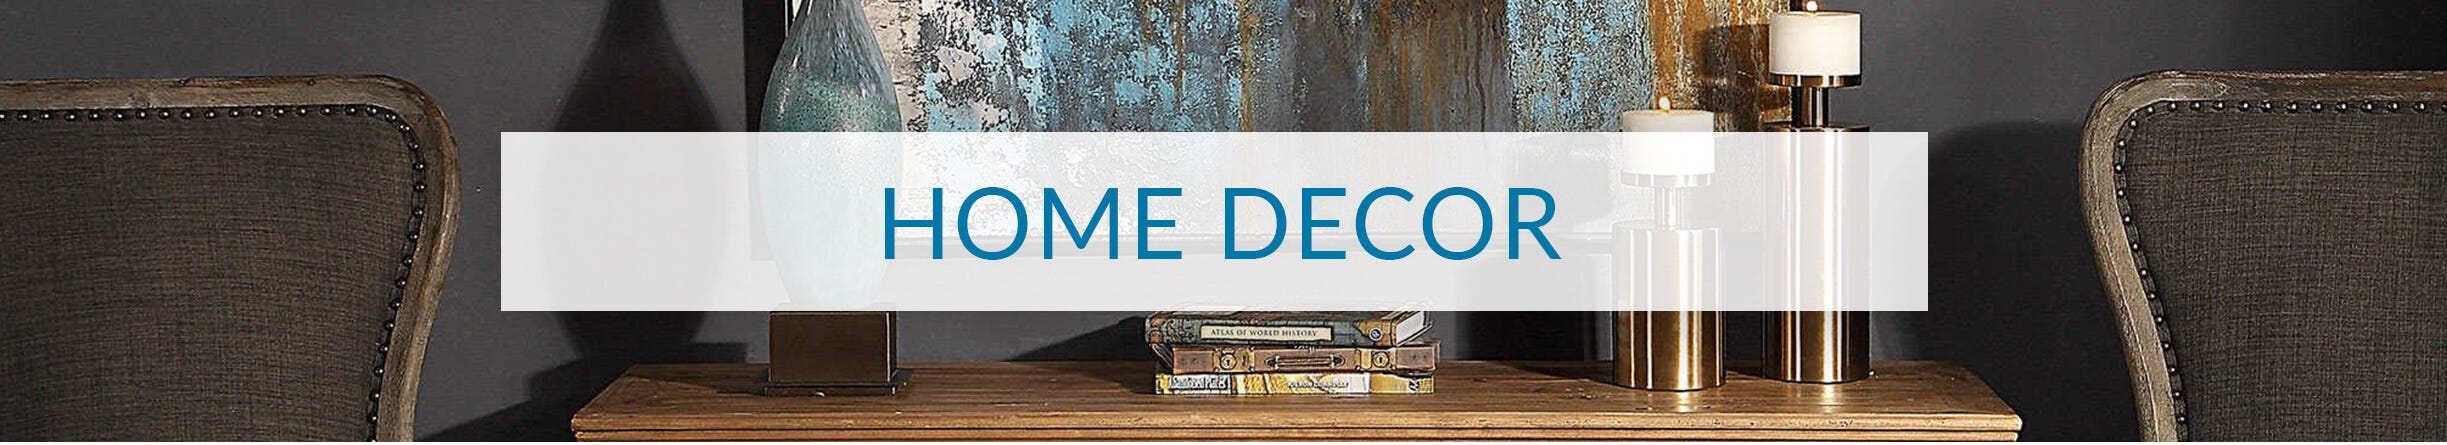 Shop Home Decor at US-Mattress.com